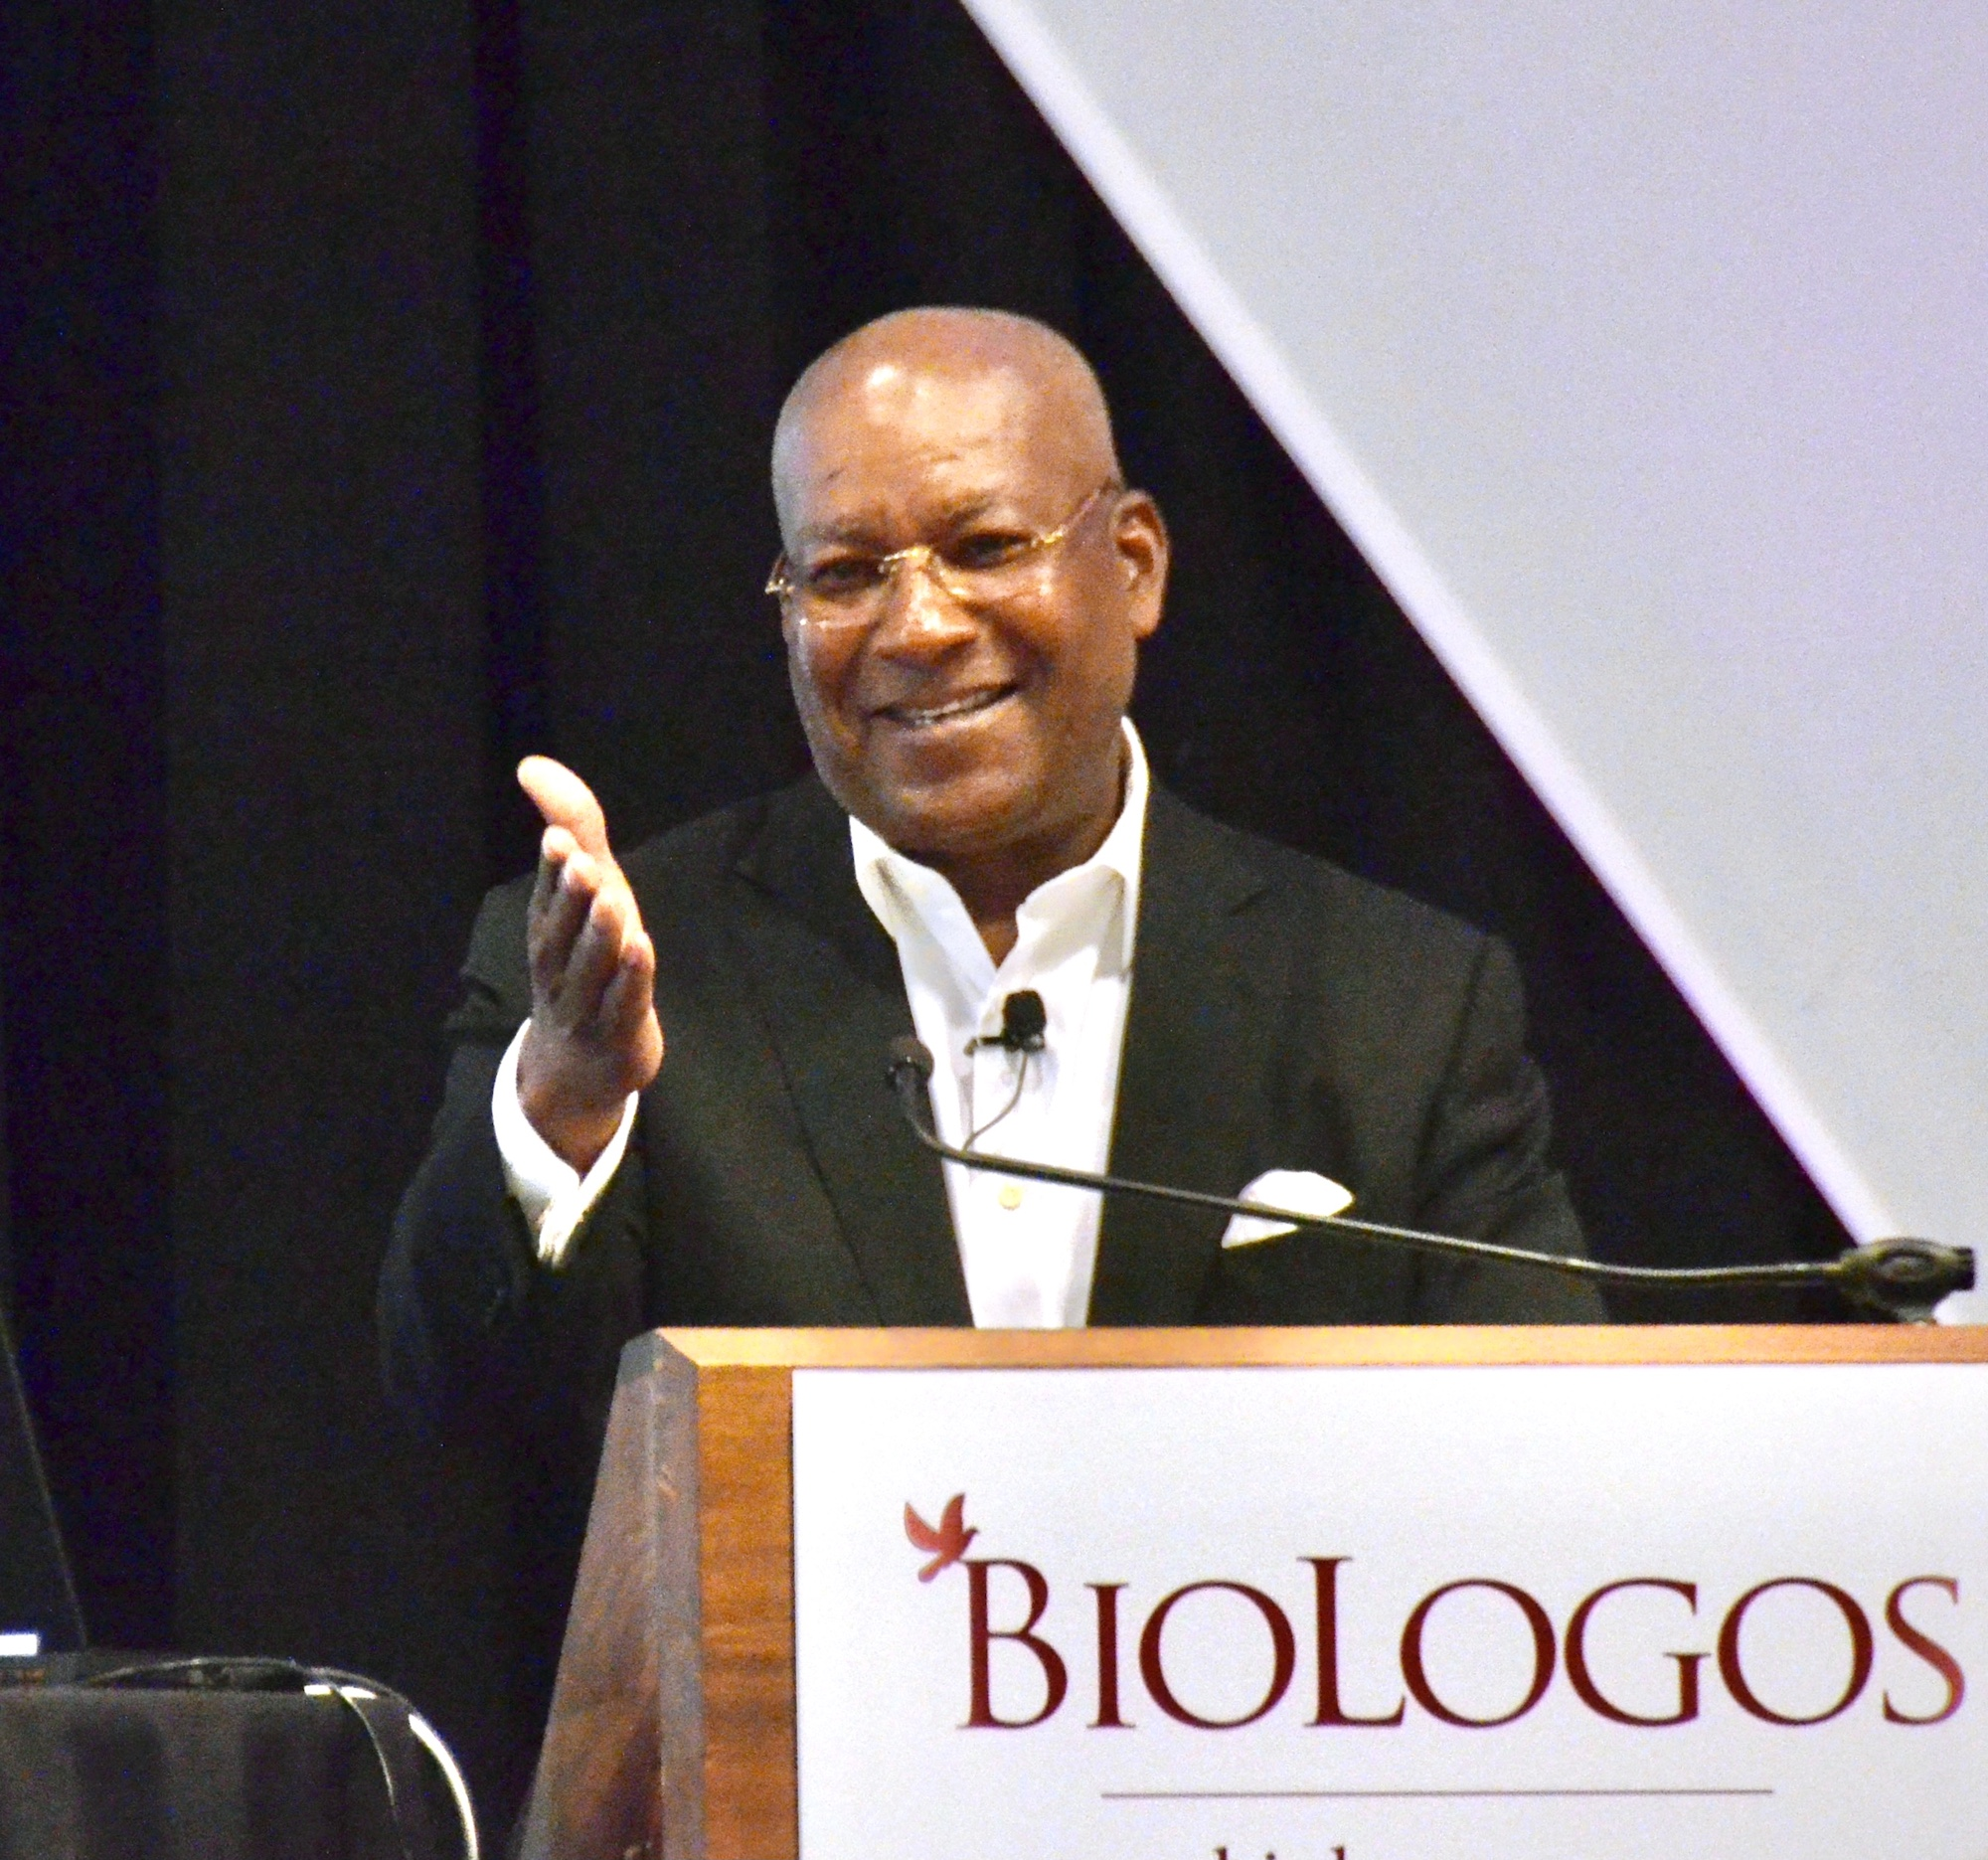 Harvey Clemons at a BioLogos Conference